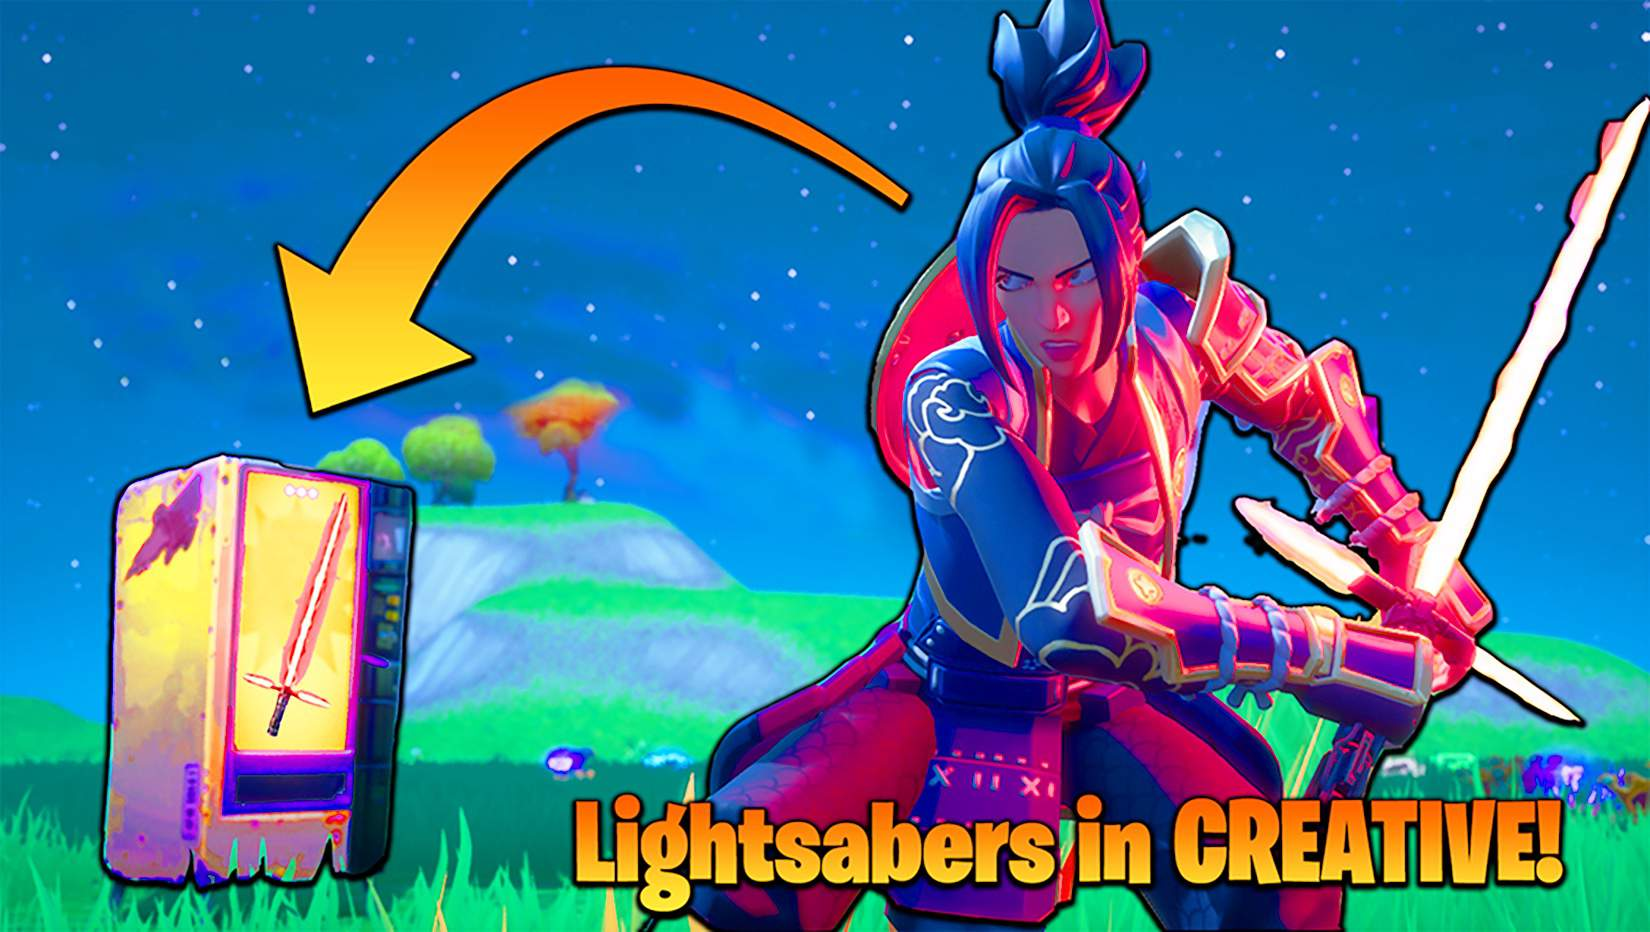 How To Get A Lightsaber On Fortnite New Video How To Get Lightsabers In Creative Mode Fortnite Battle Royale Armory Amino